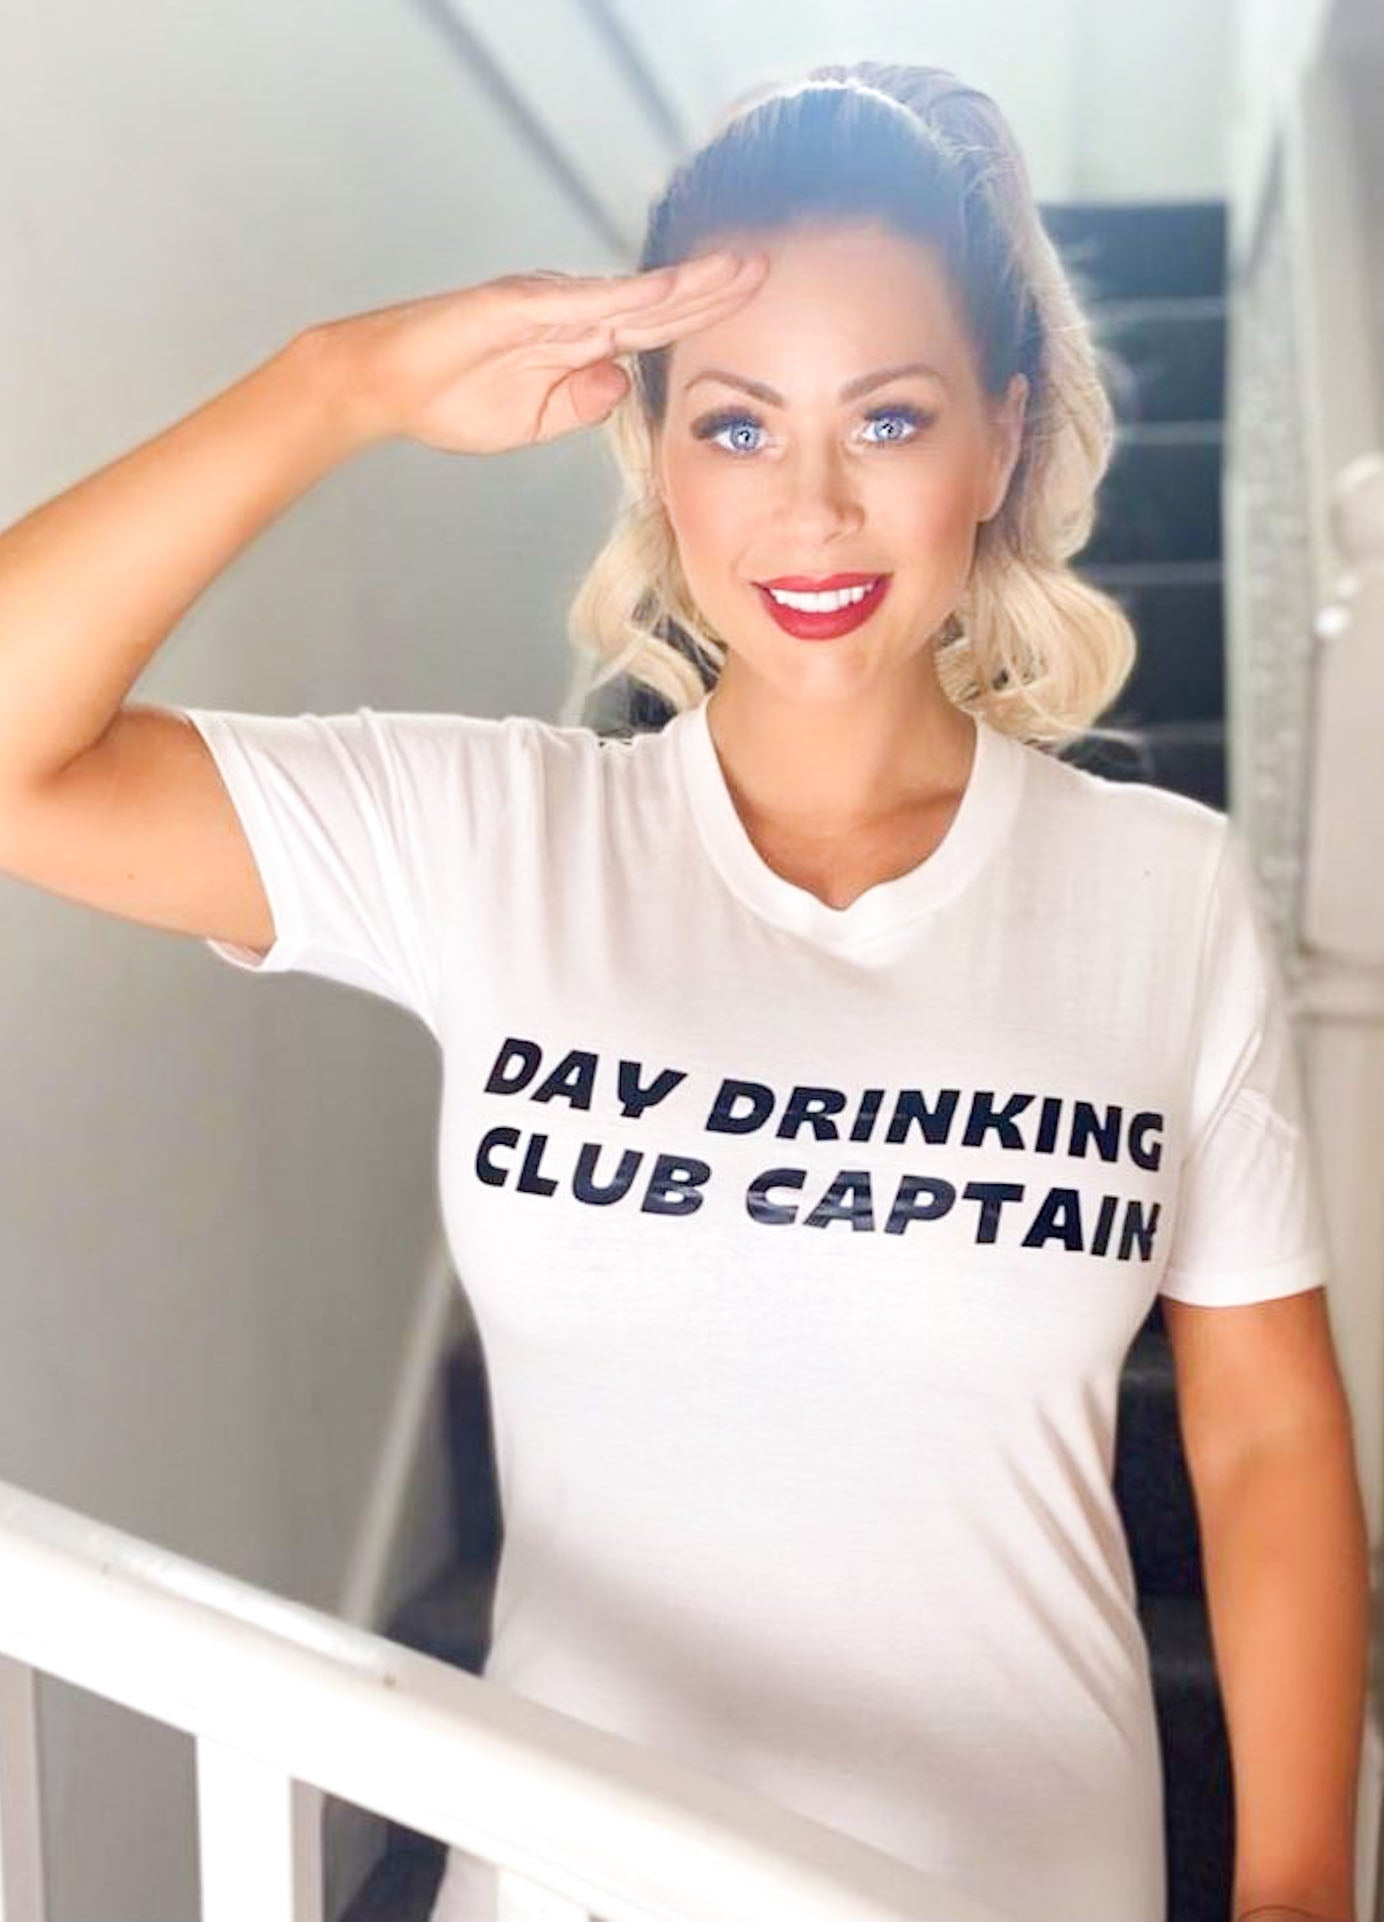 NICOLA MCLEAN DAY DRINKING CLUB CAPTAIN